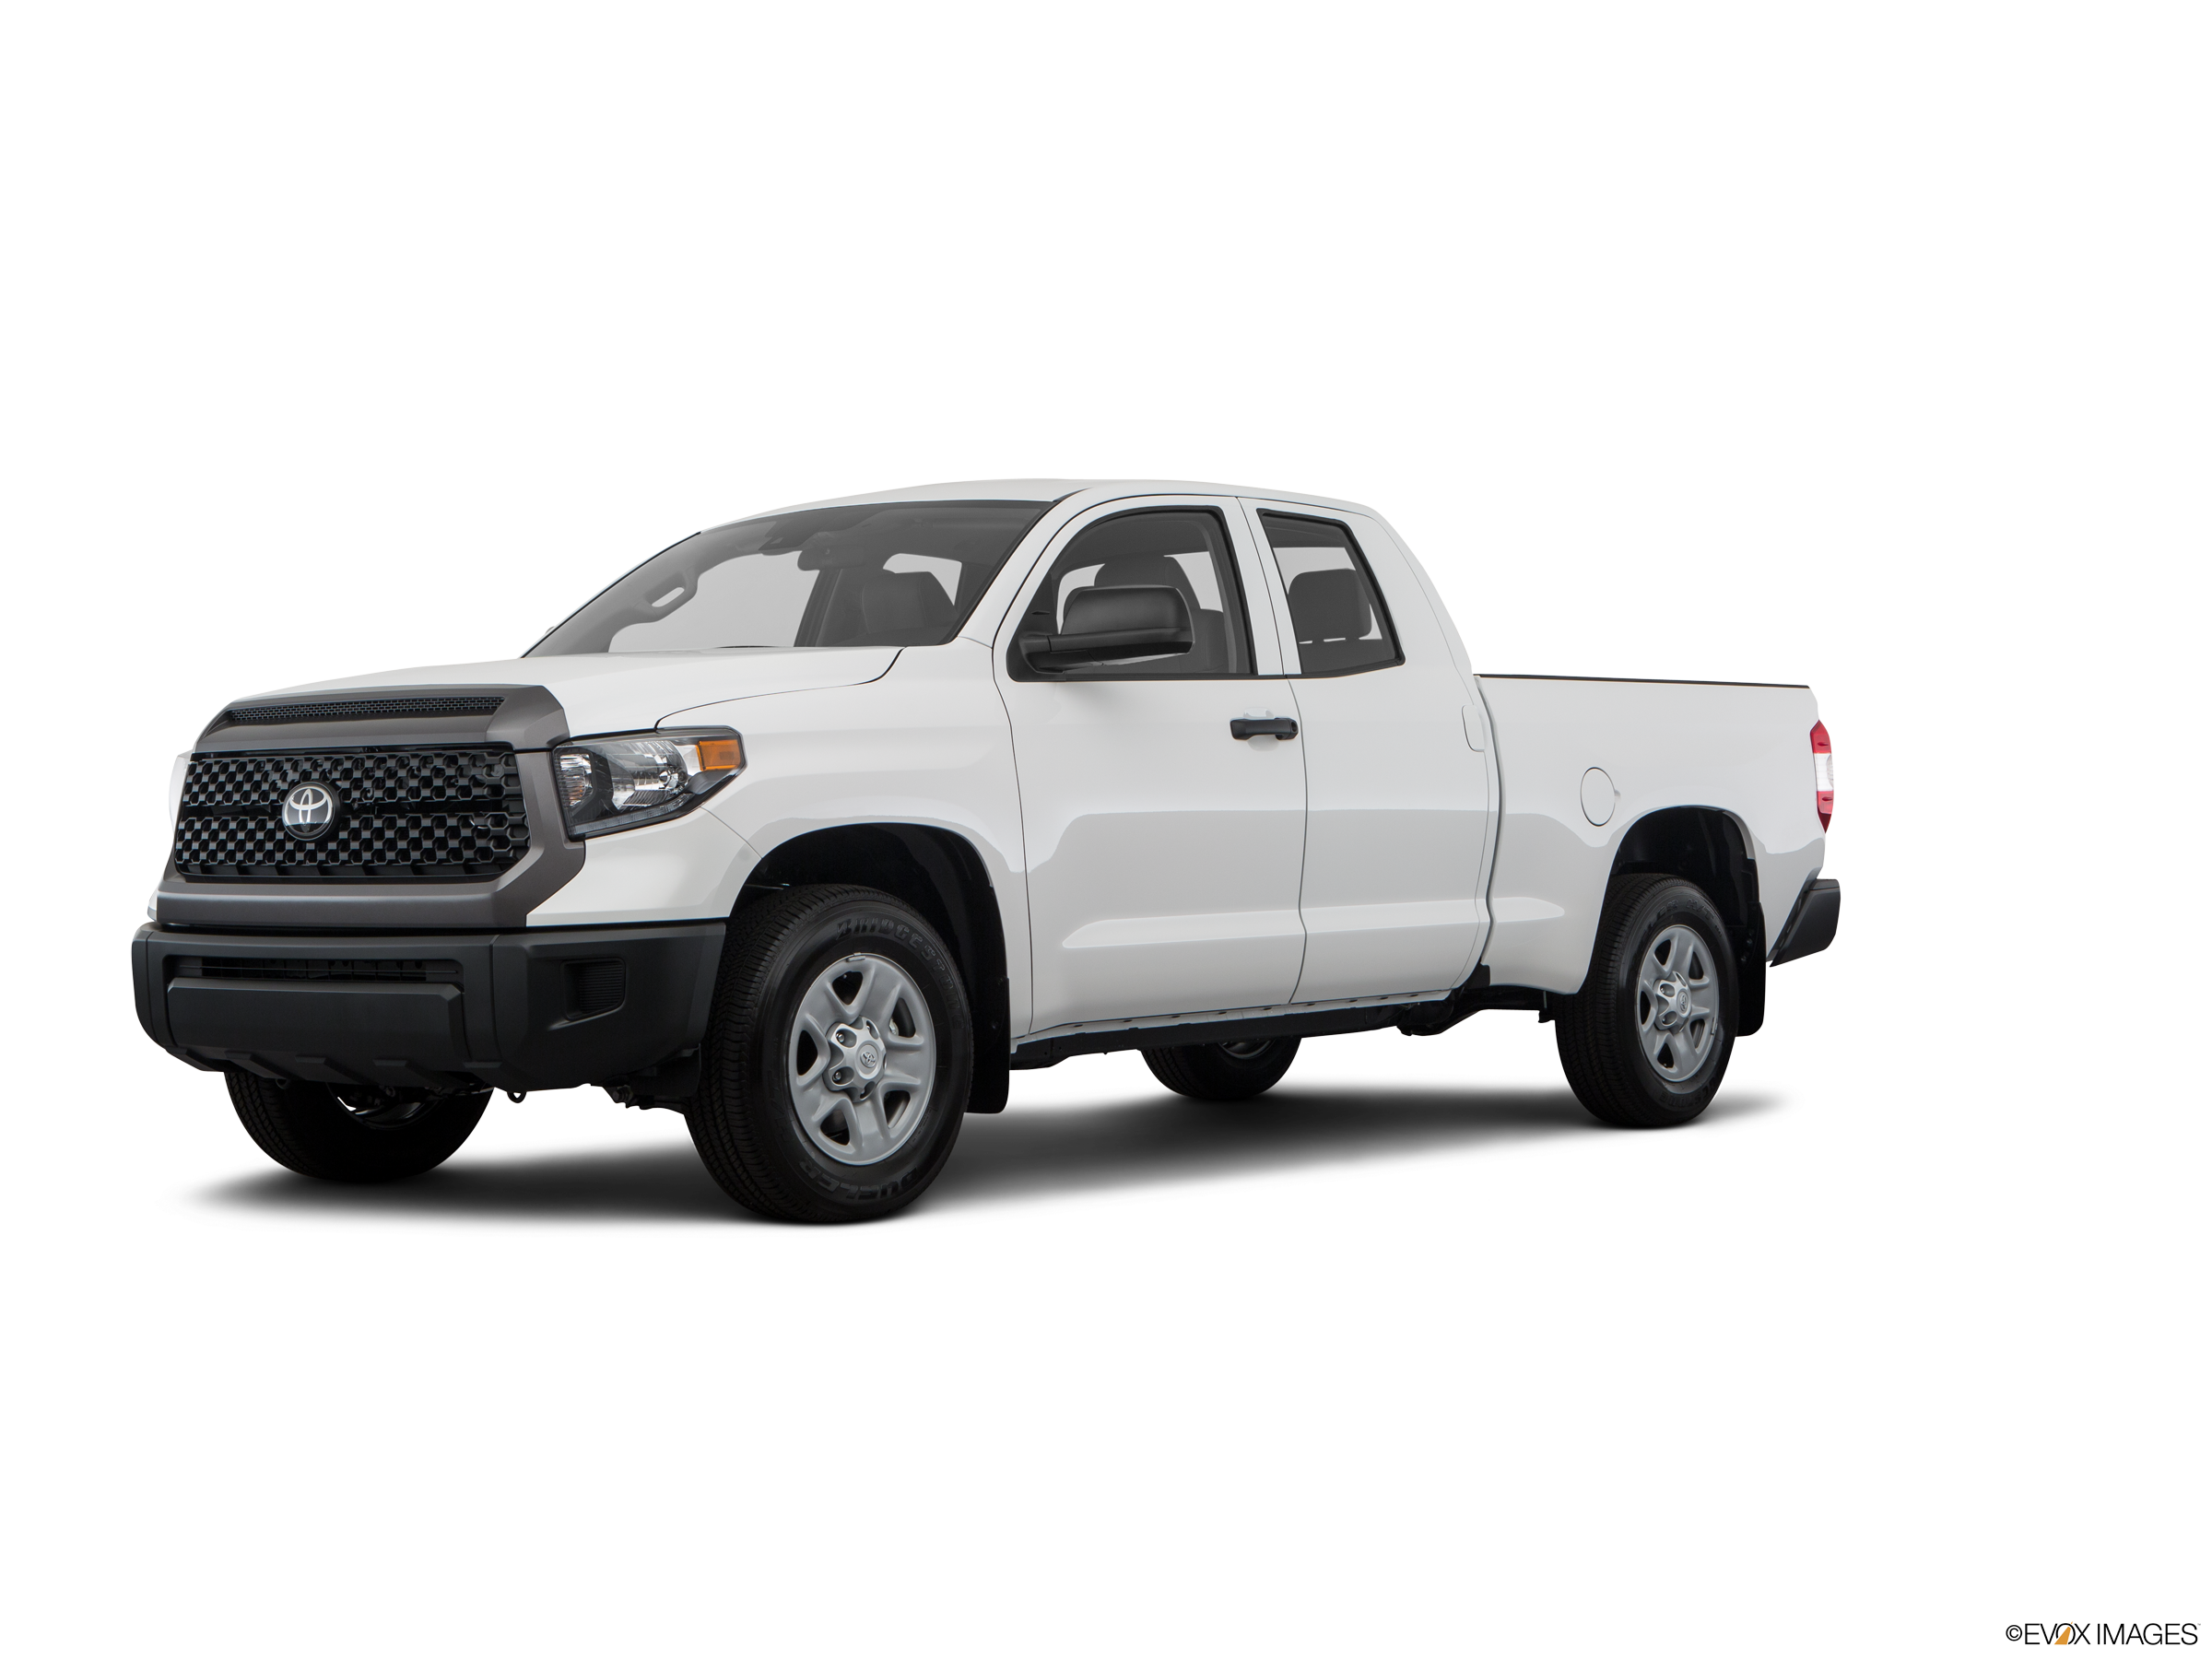 Astounding 2020 Toyota Tundra Pricing Reviews Ratings Kelley Blue Book Unemploymentrelief Wooden Chair Designs For Living Room Unemploymentrelieforg